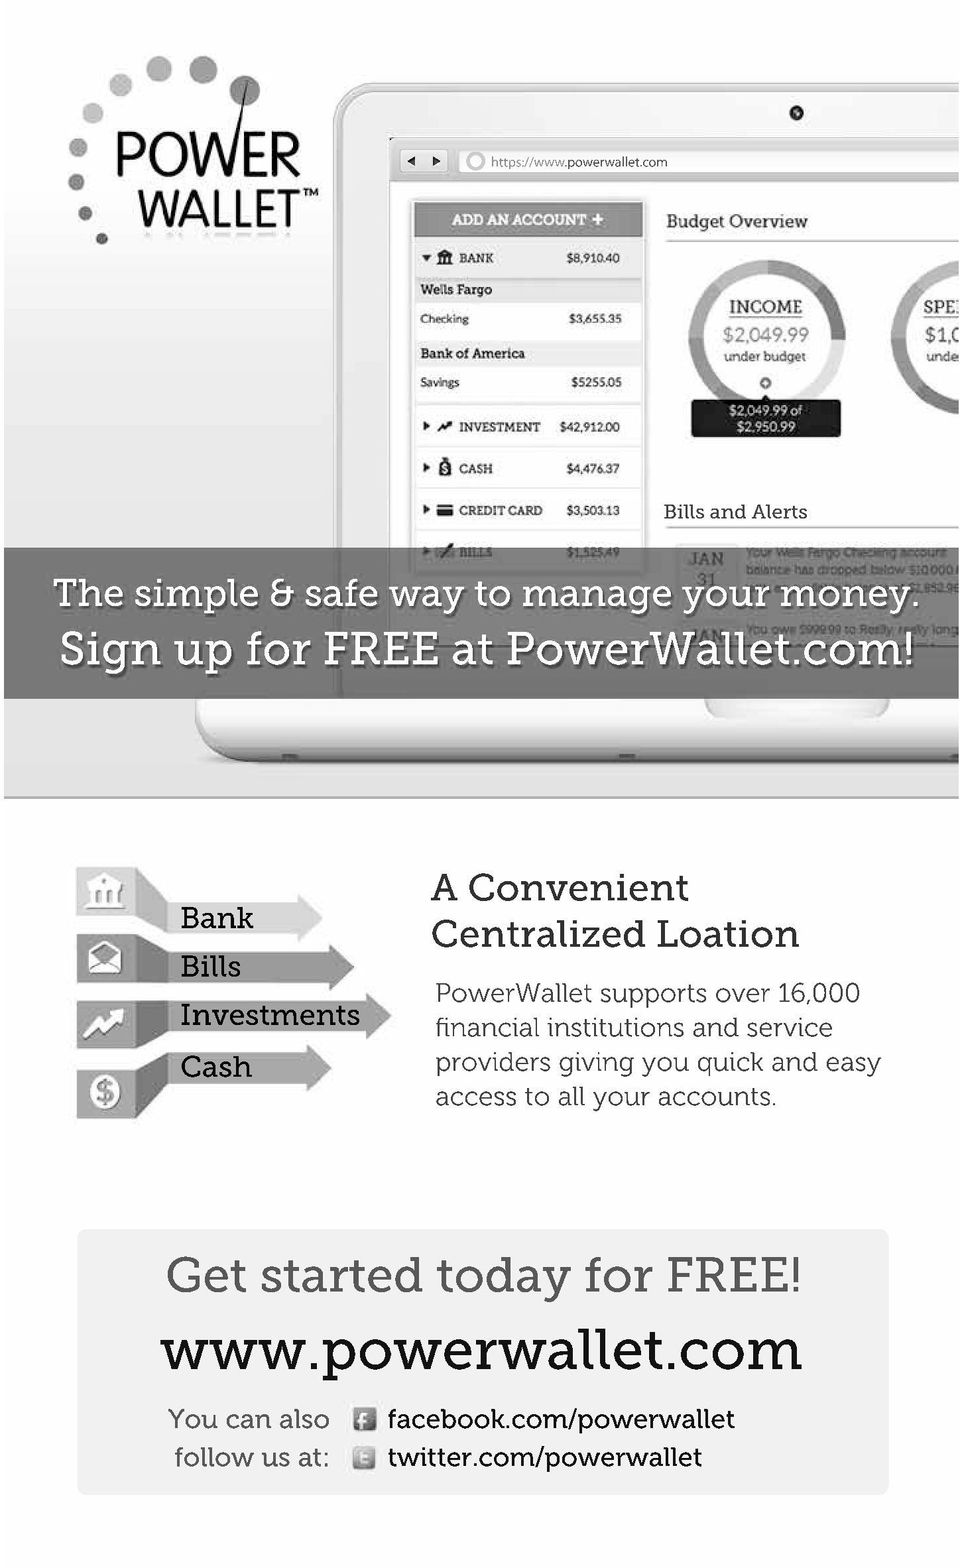 Bank Bills Investments Cash A Convenient Centralized Loation PowerWallet supports over 16,000 financial